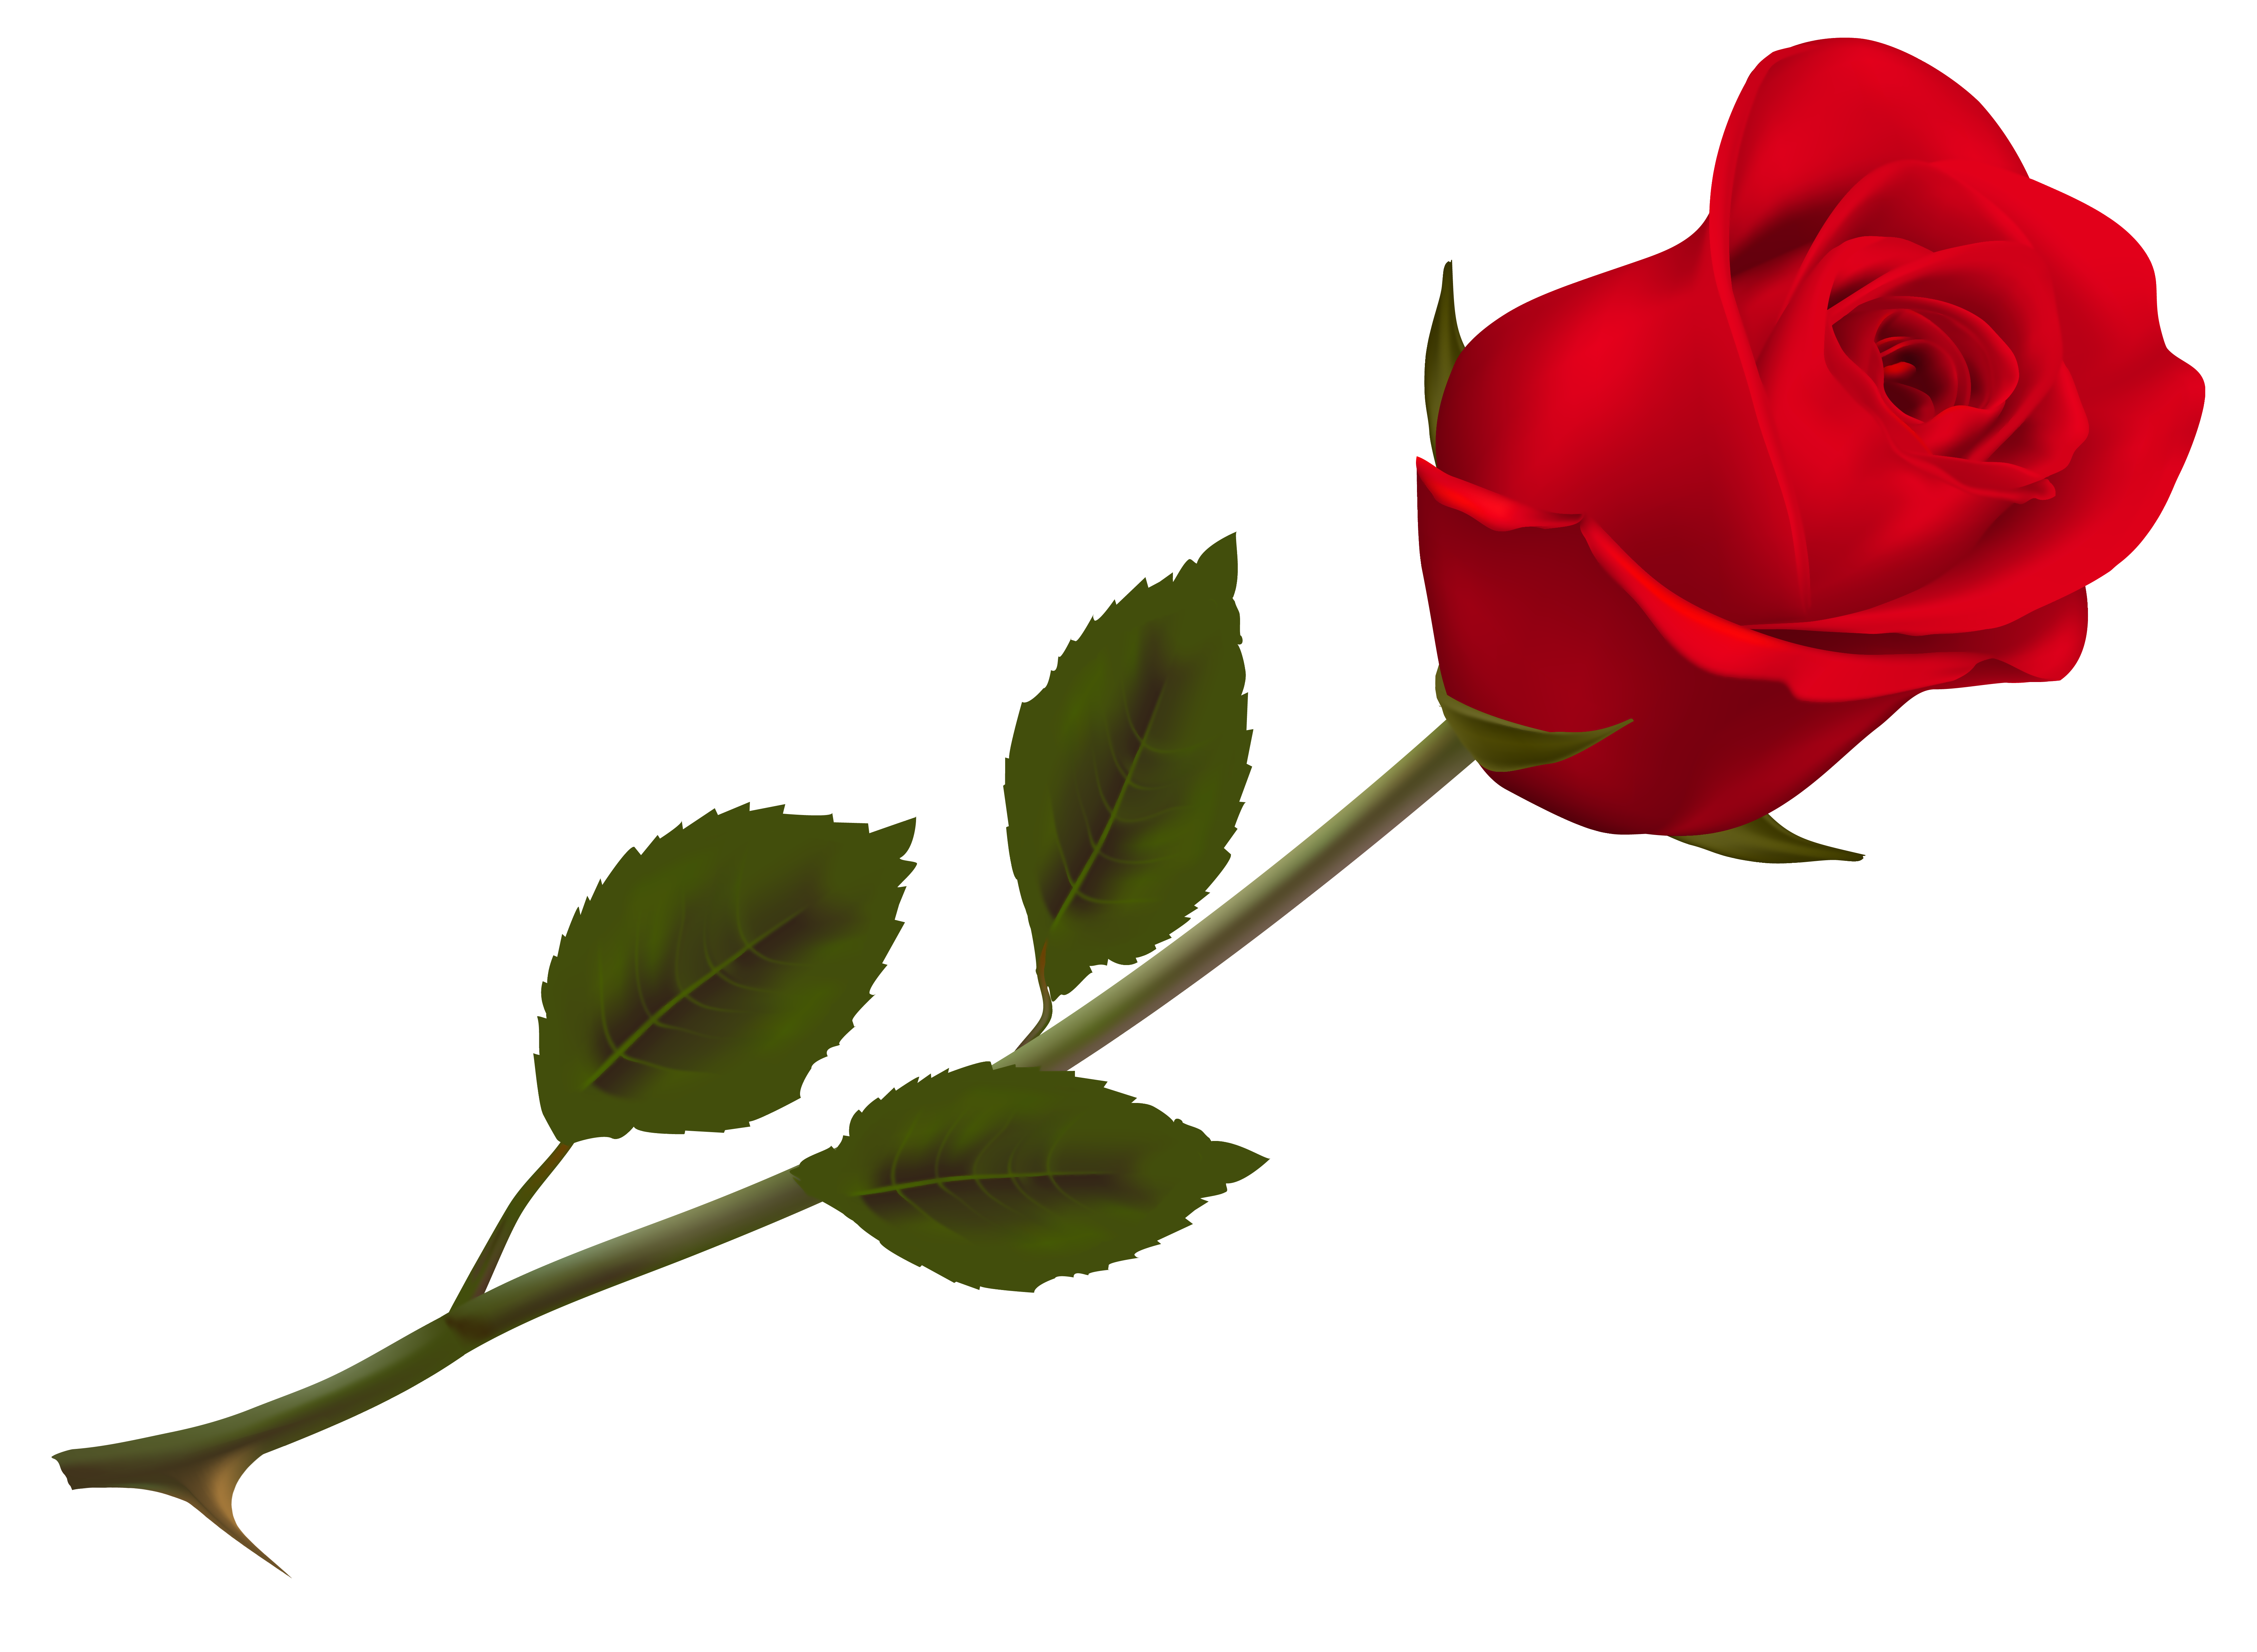 Transparent beautiful red picture. Rose flower png